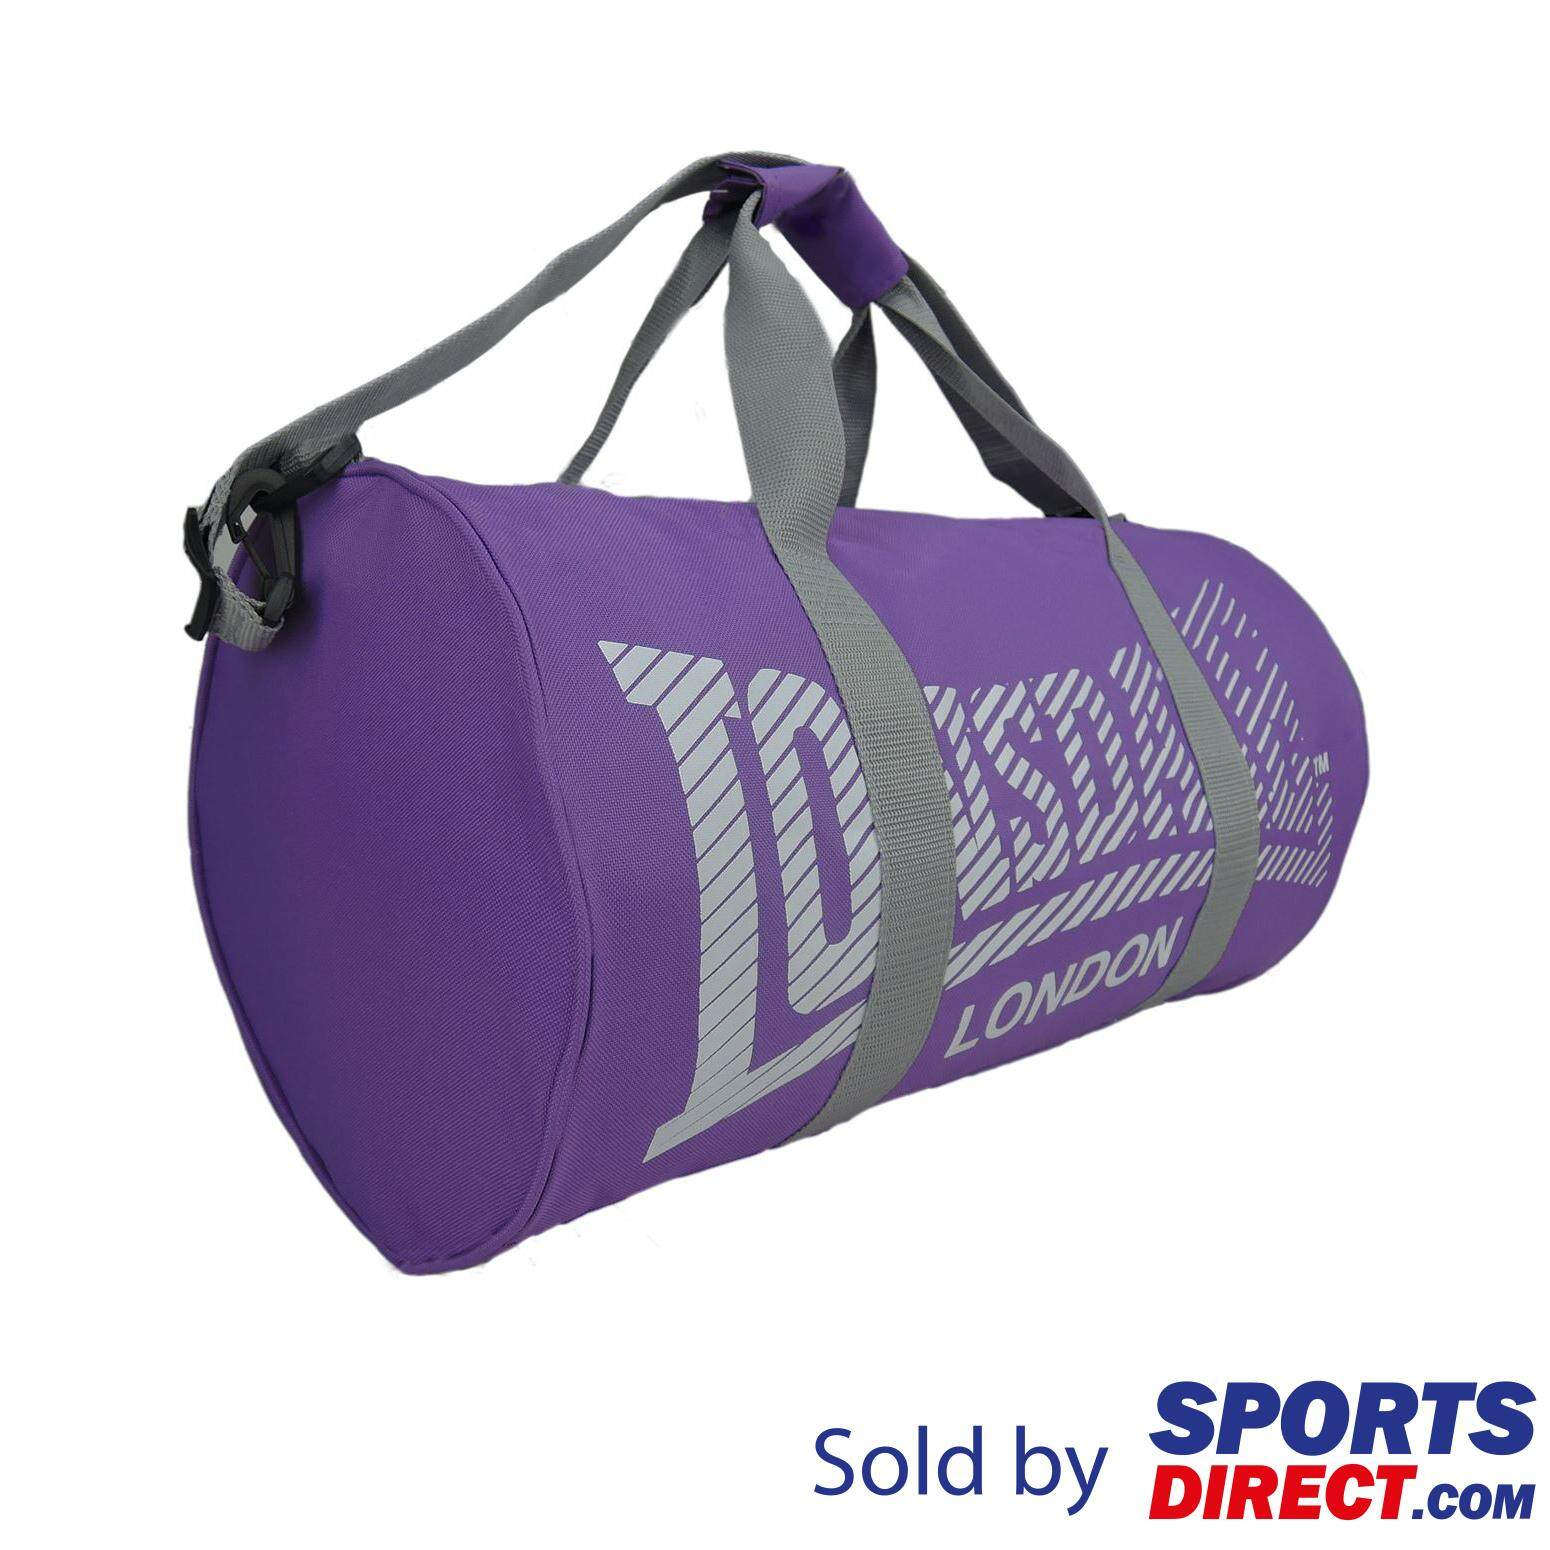 Women s Sports Bags - Buy Women s Sports Bags at Best Price in ... f19ab75943